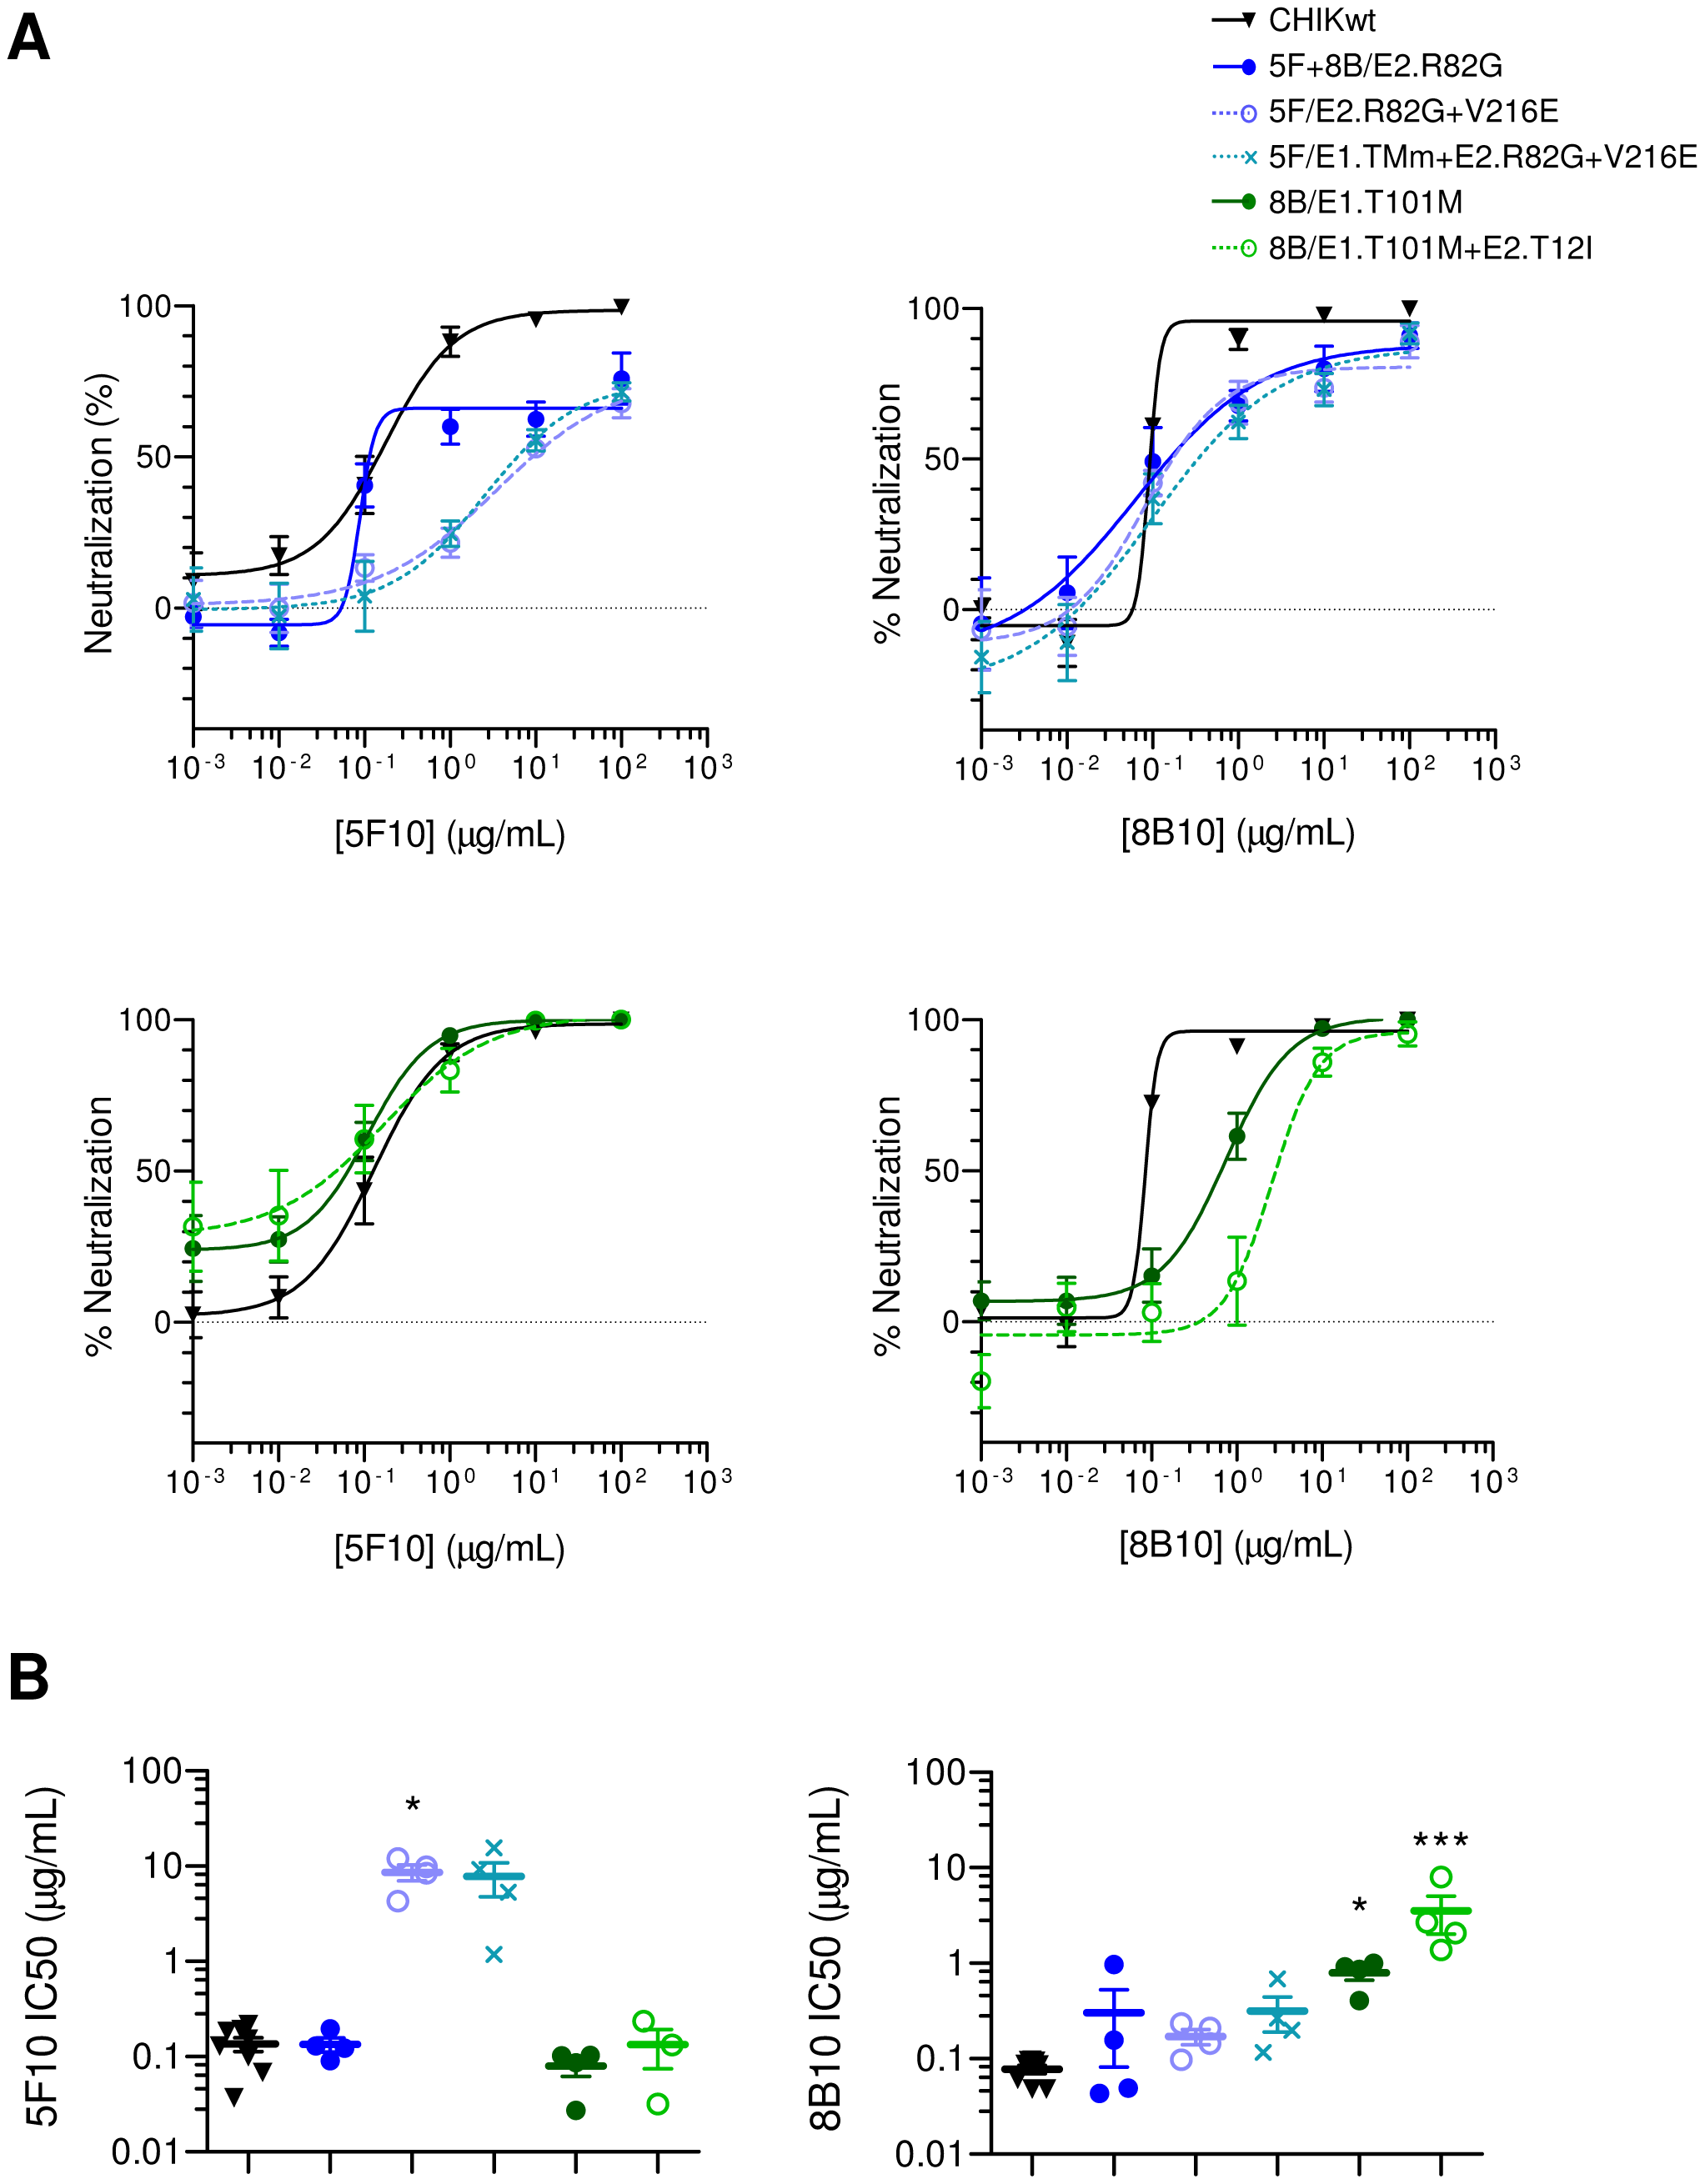 5F10 and 8B10 mAb neutralizing potency against clonal CHIKVs.